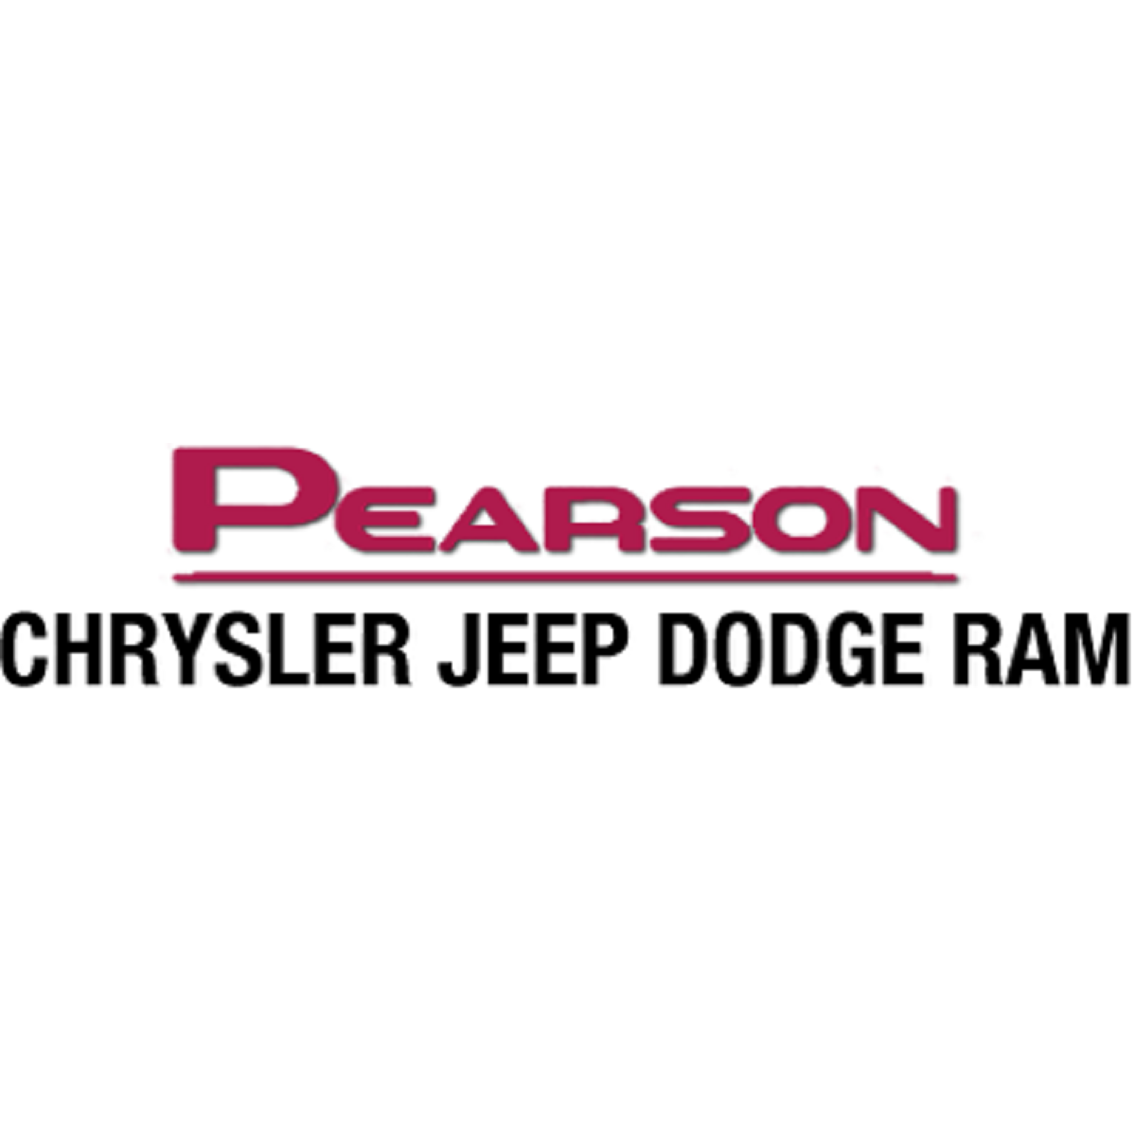 Pearson Chrysler Jeep Dodge, Richmond Virginia (VA